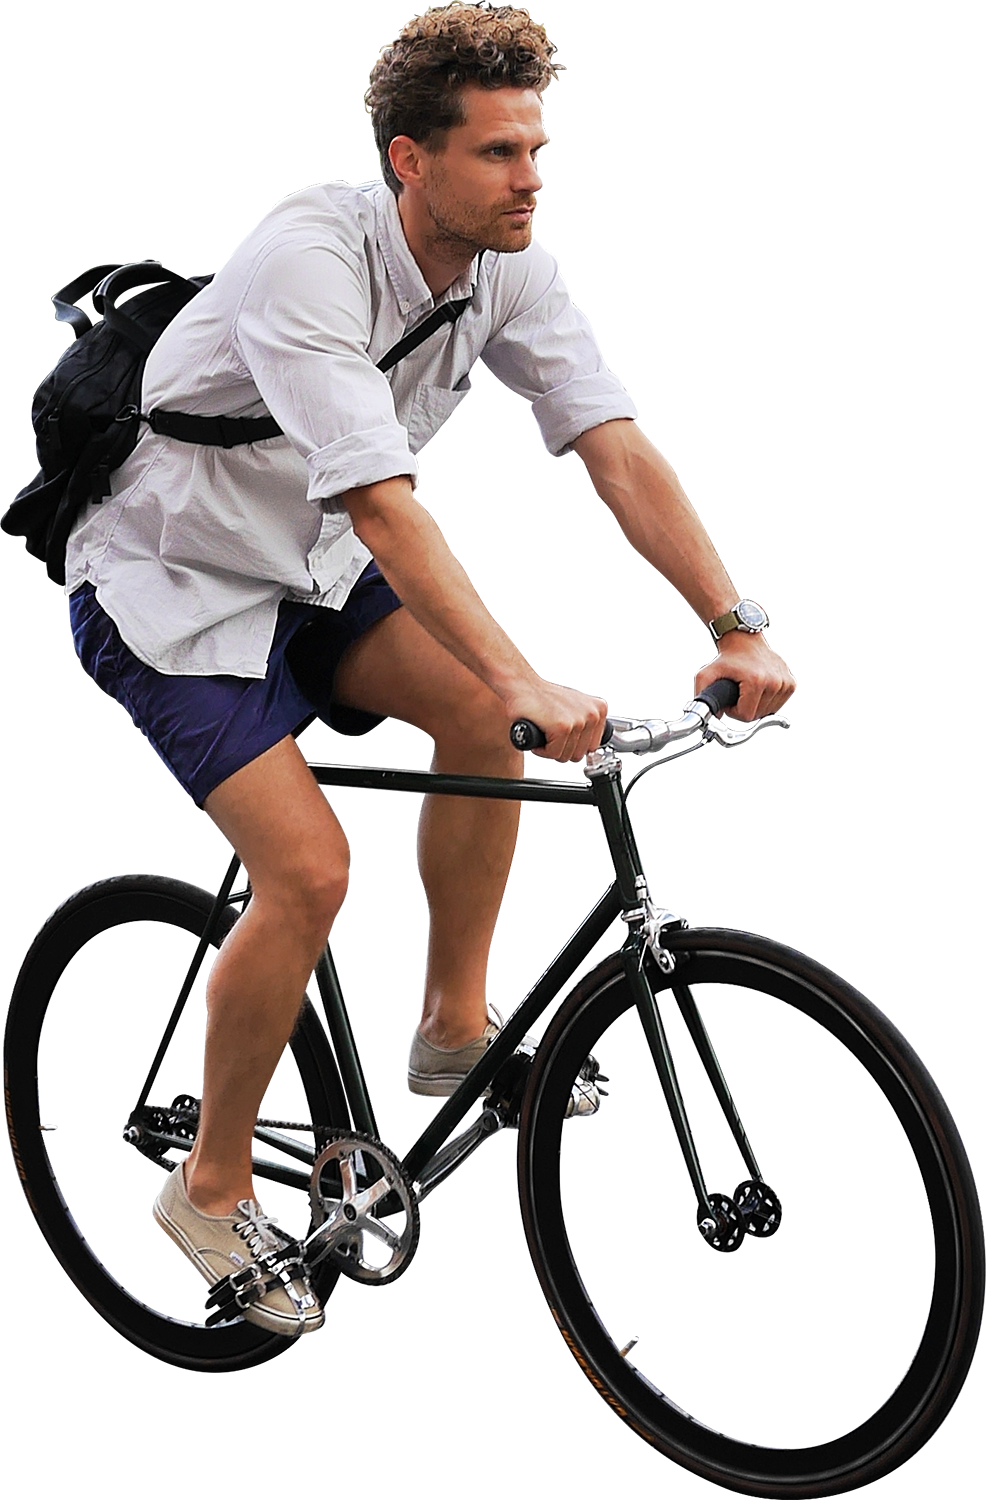 Ride A Bike PNG